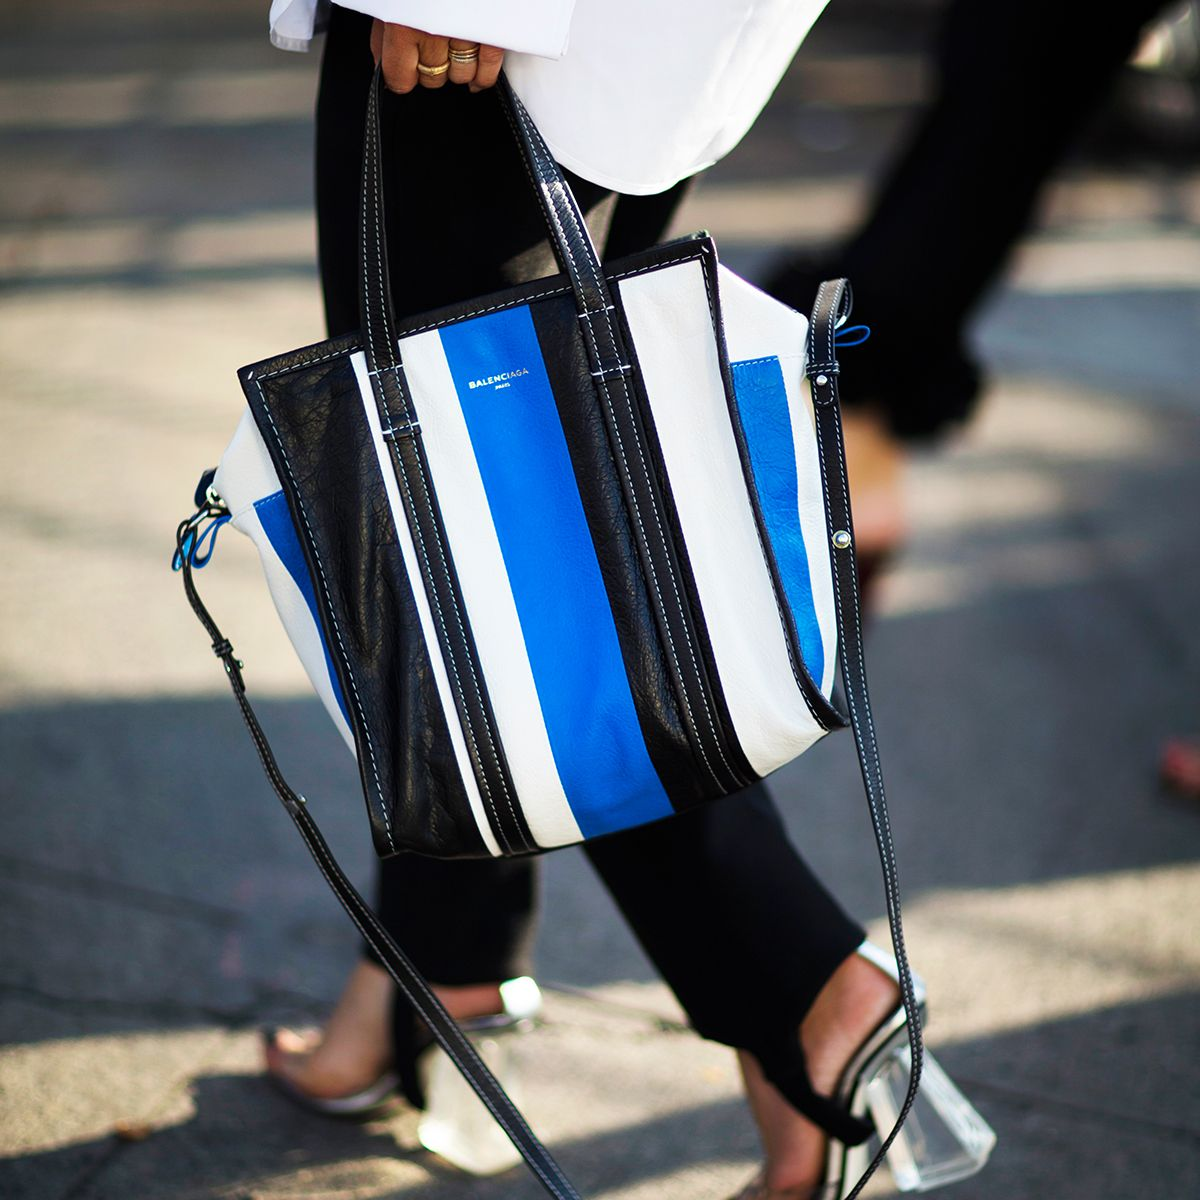 fb988eba27d4c Balenciaga's Bazar bag draws on a vocabulary of references that are at once  cerebral and witty